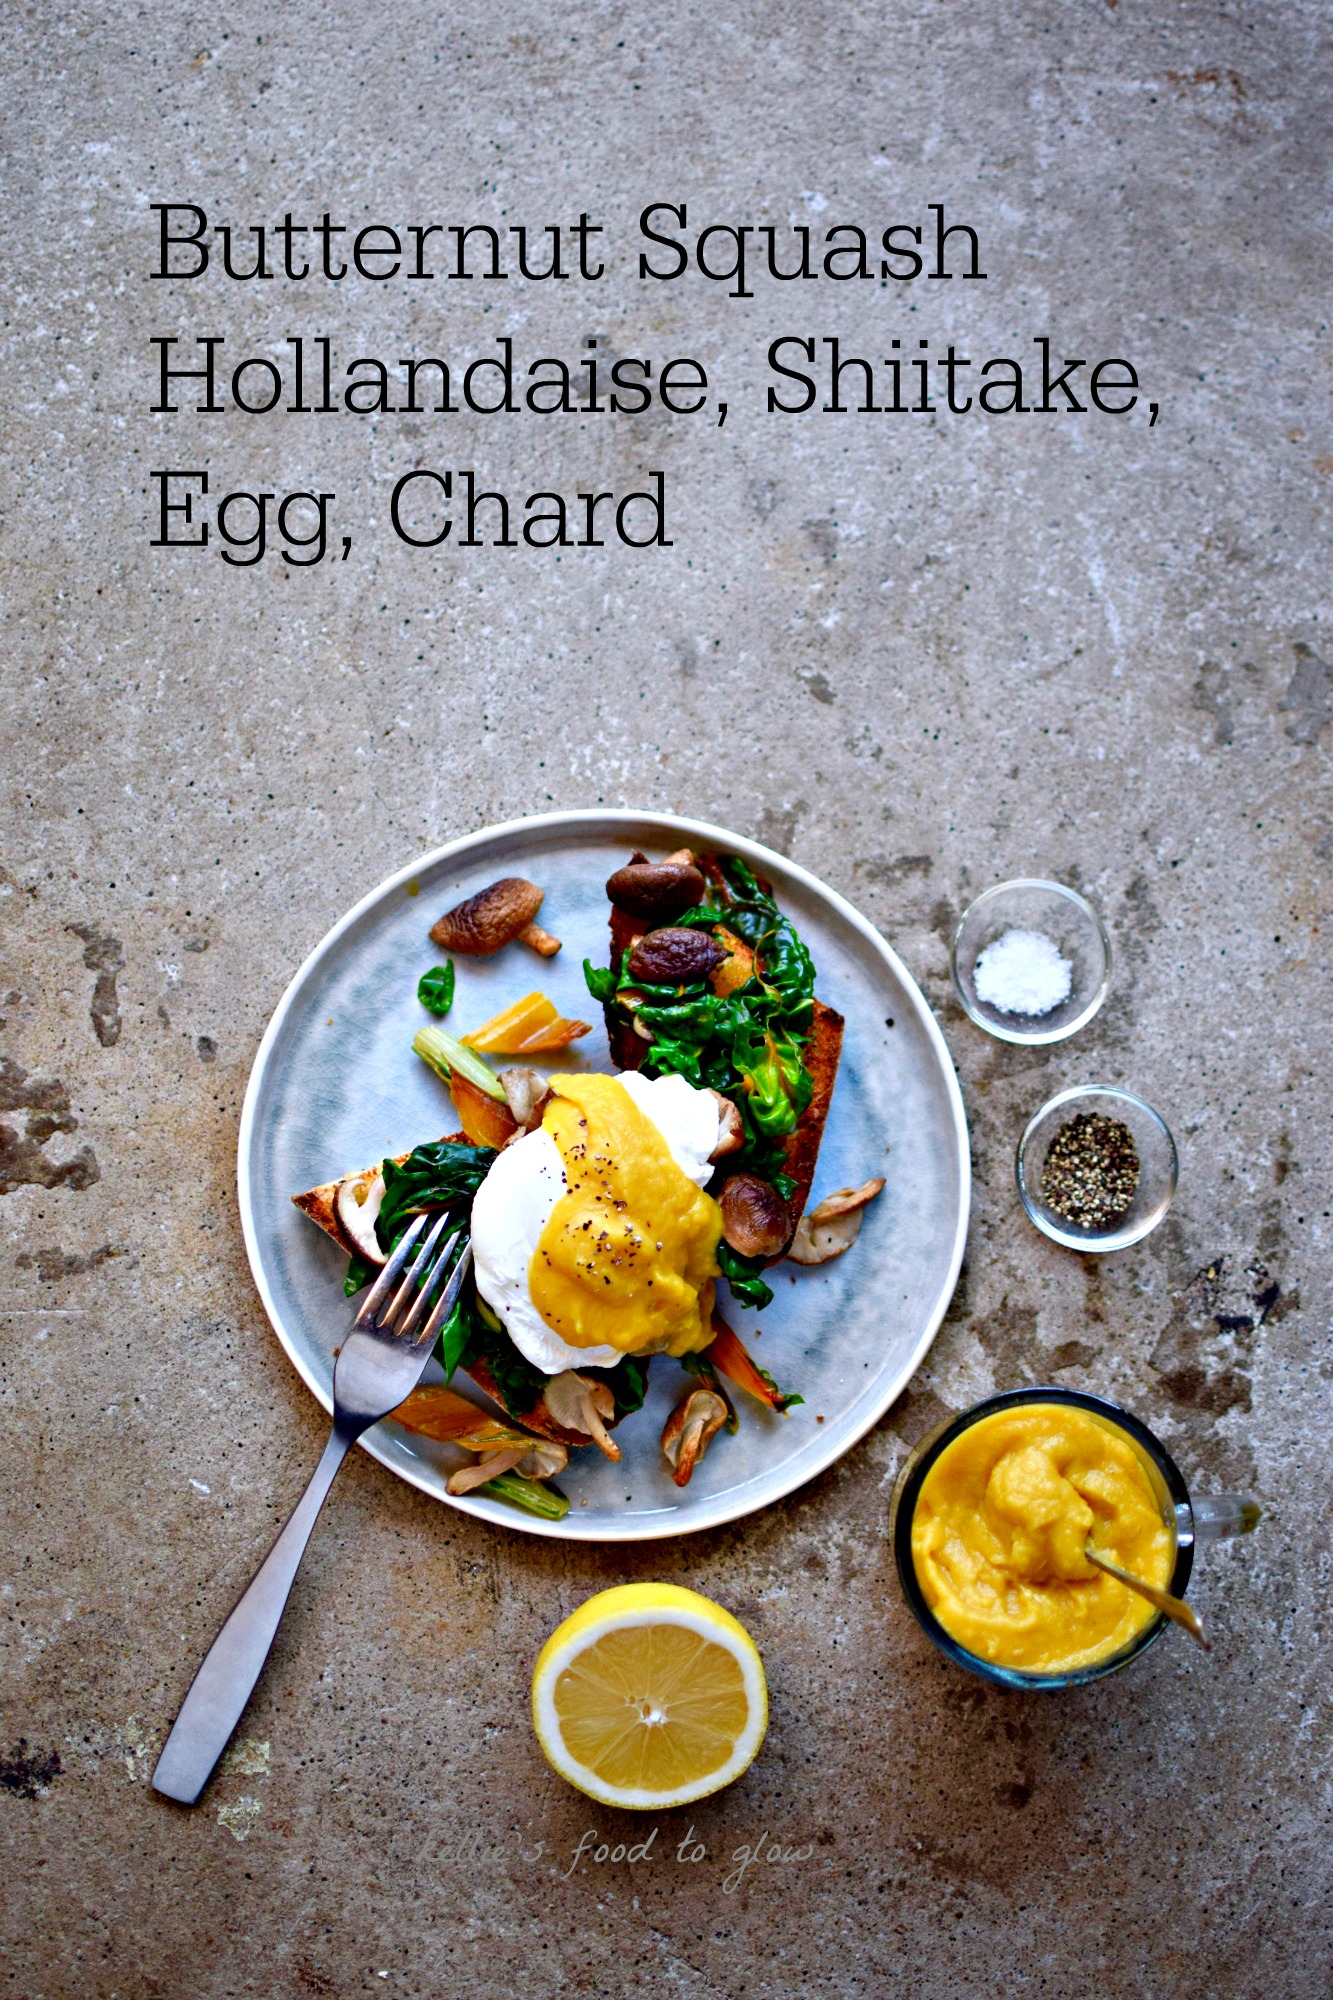 Whole Food eggs Benedict > Blend steamed butternut squash with a few key ingredients and you have a credible whole food hollandaise sauce for topping your eggs, veggies, pasta - and anything else that takes your fancy. Once made, this sauce will be your go-to for luxurious but nutritious breakfasts, and more.